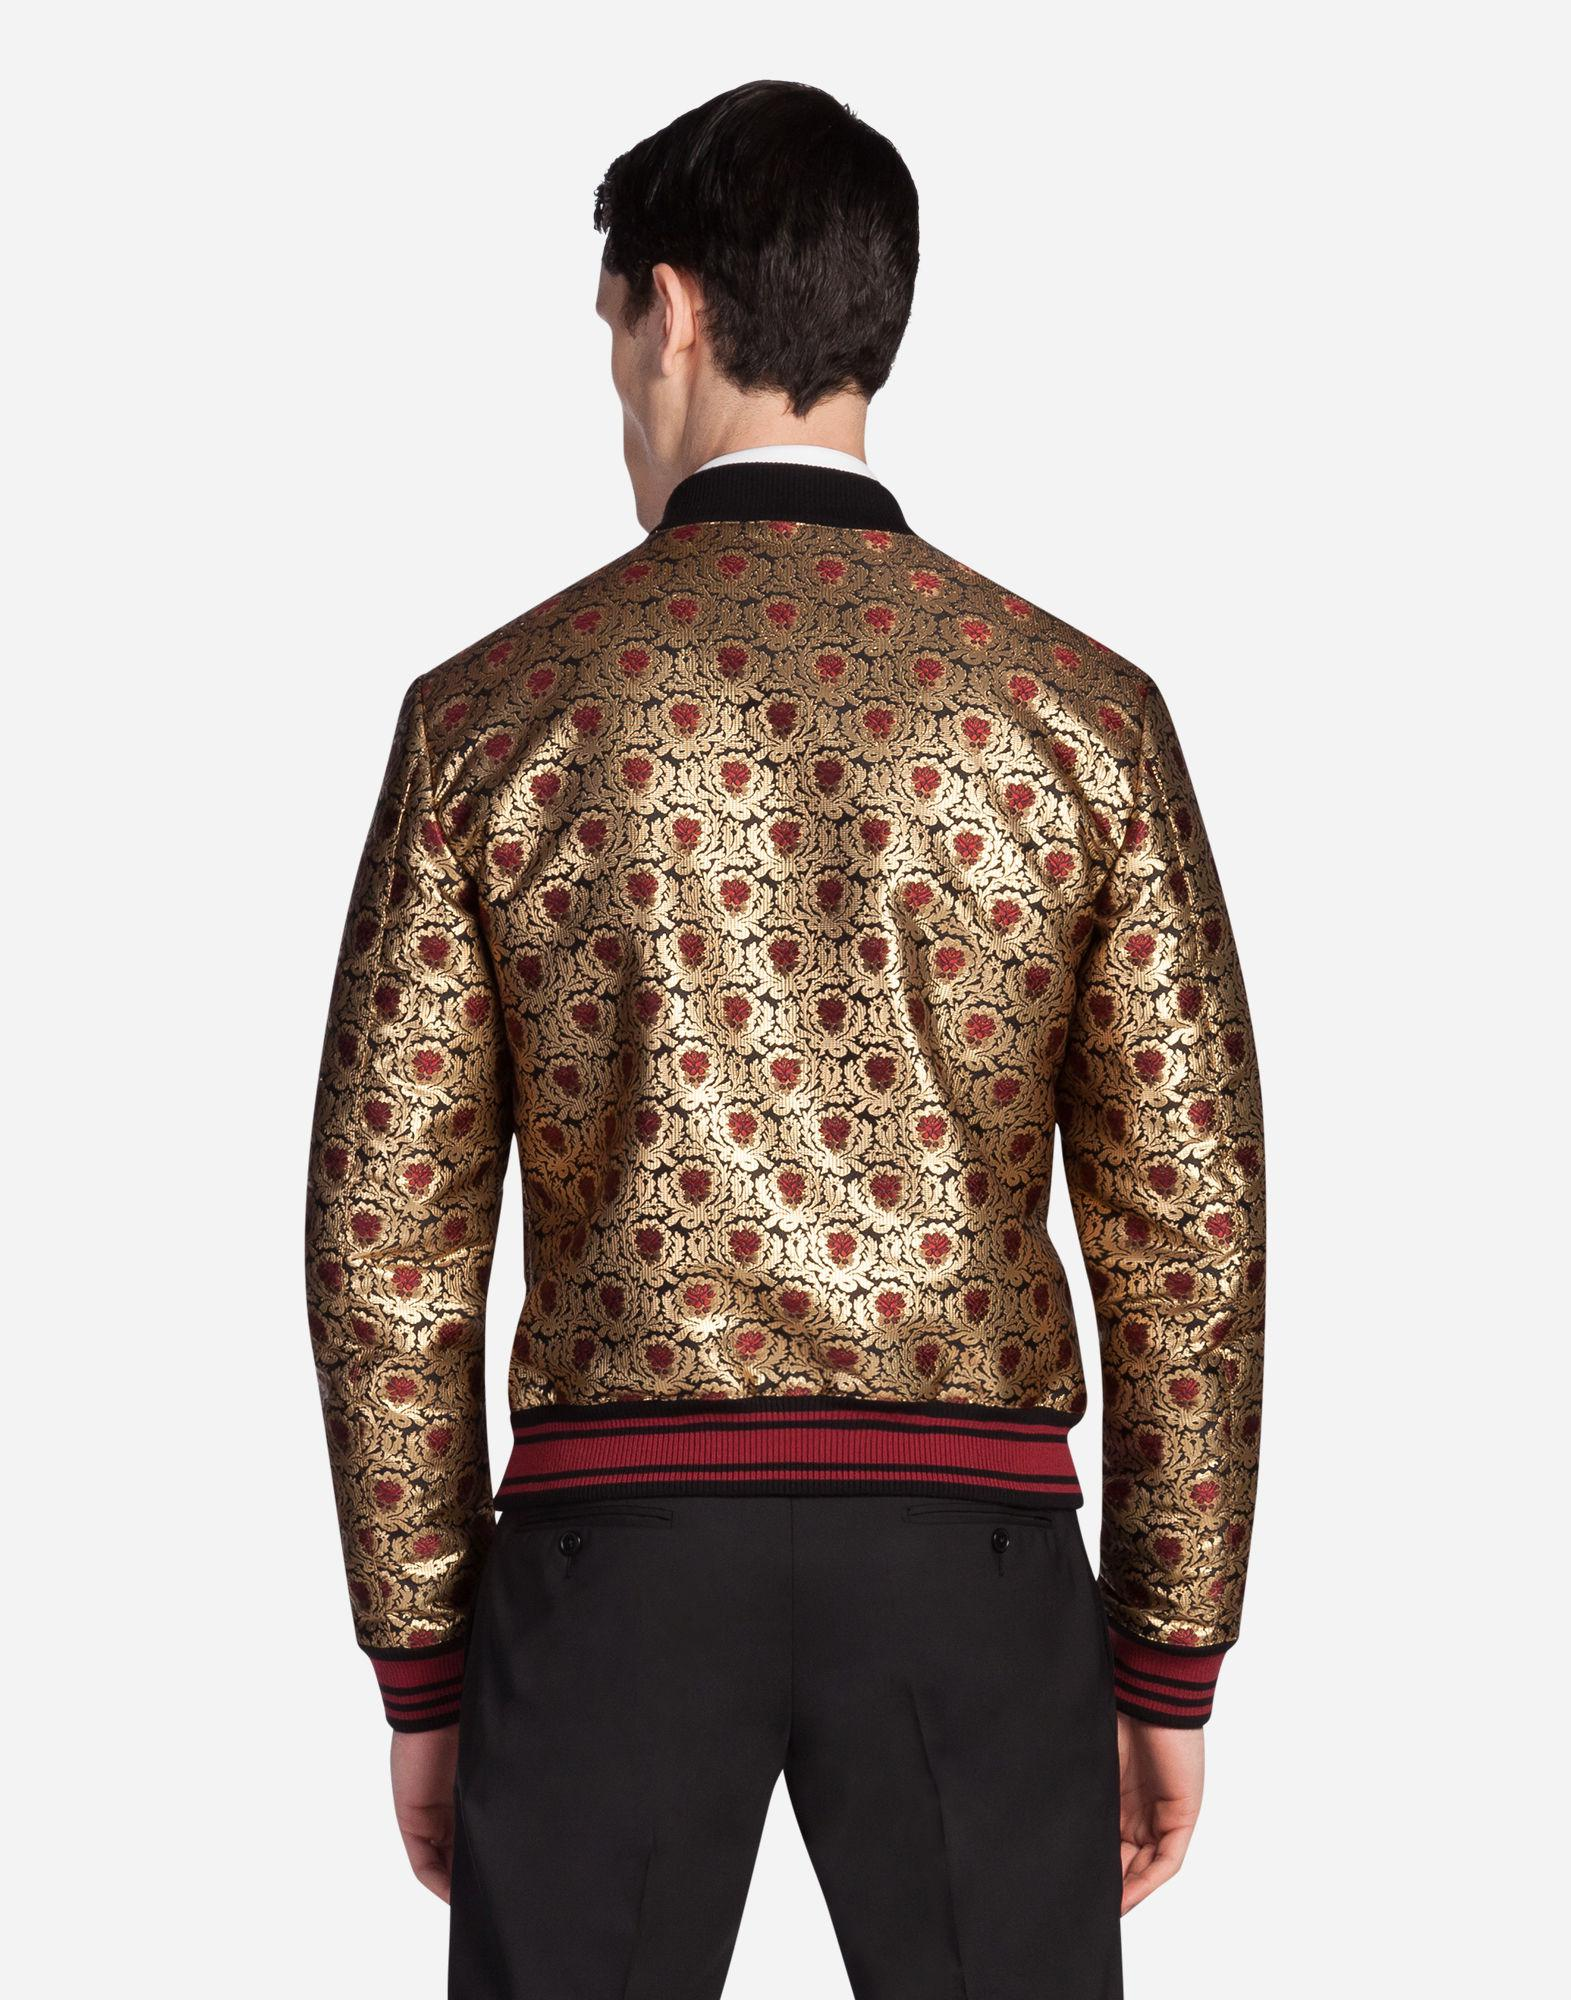 Dolce & Gabbana Synthetic Jacquard Bomber Jacket in Gold (Metallic) for Men